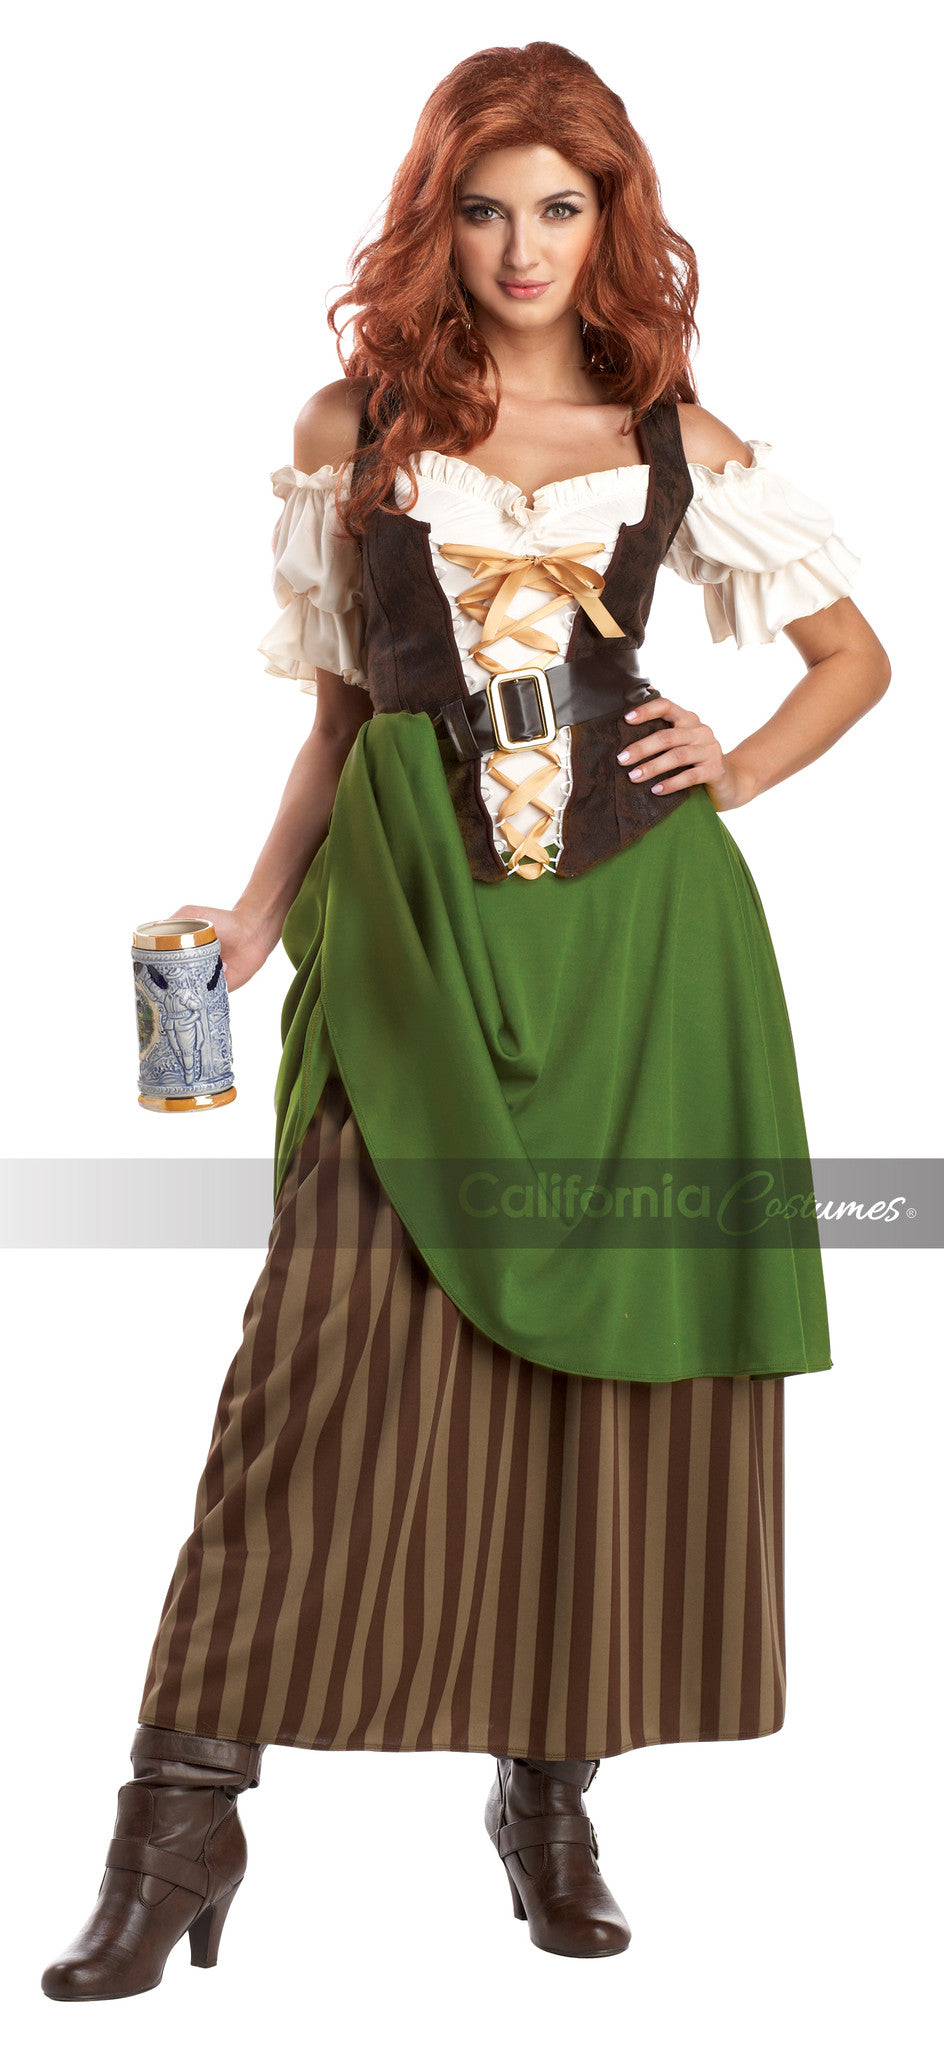 de965f35207 Medieval-Renaissance · Tavern Maiden in Packaged Costumes from CALIFORNIA  at Buffalo Breath Costumes